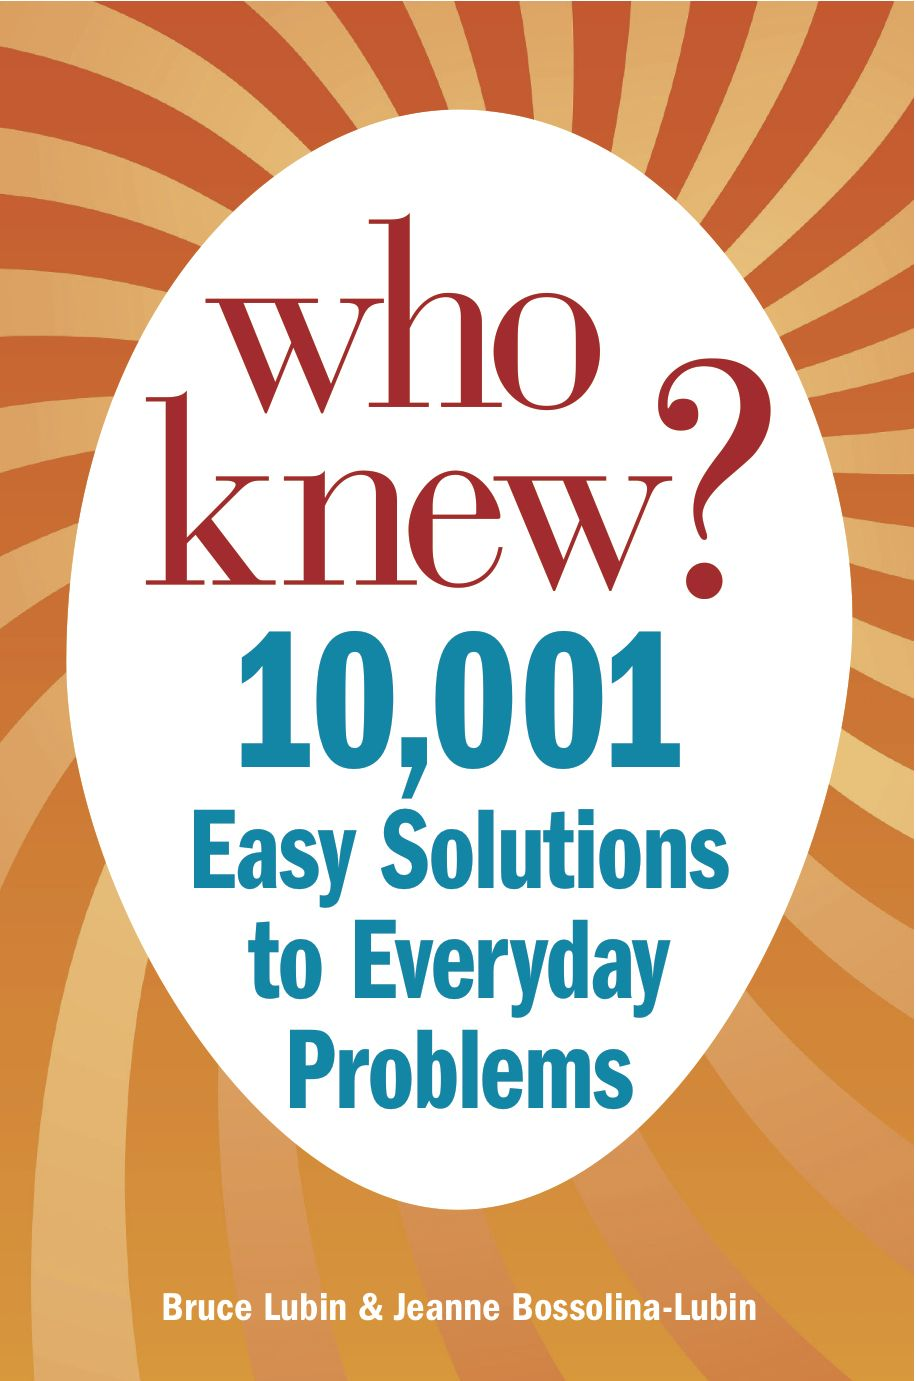 10,001 Easy Solutions to Everyday Problems